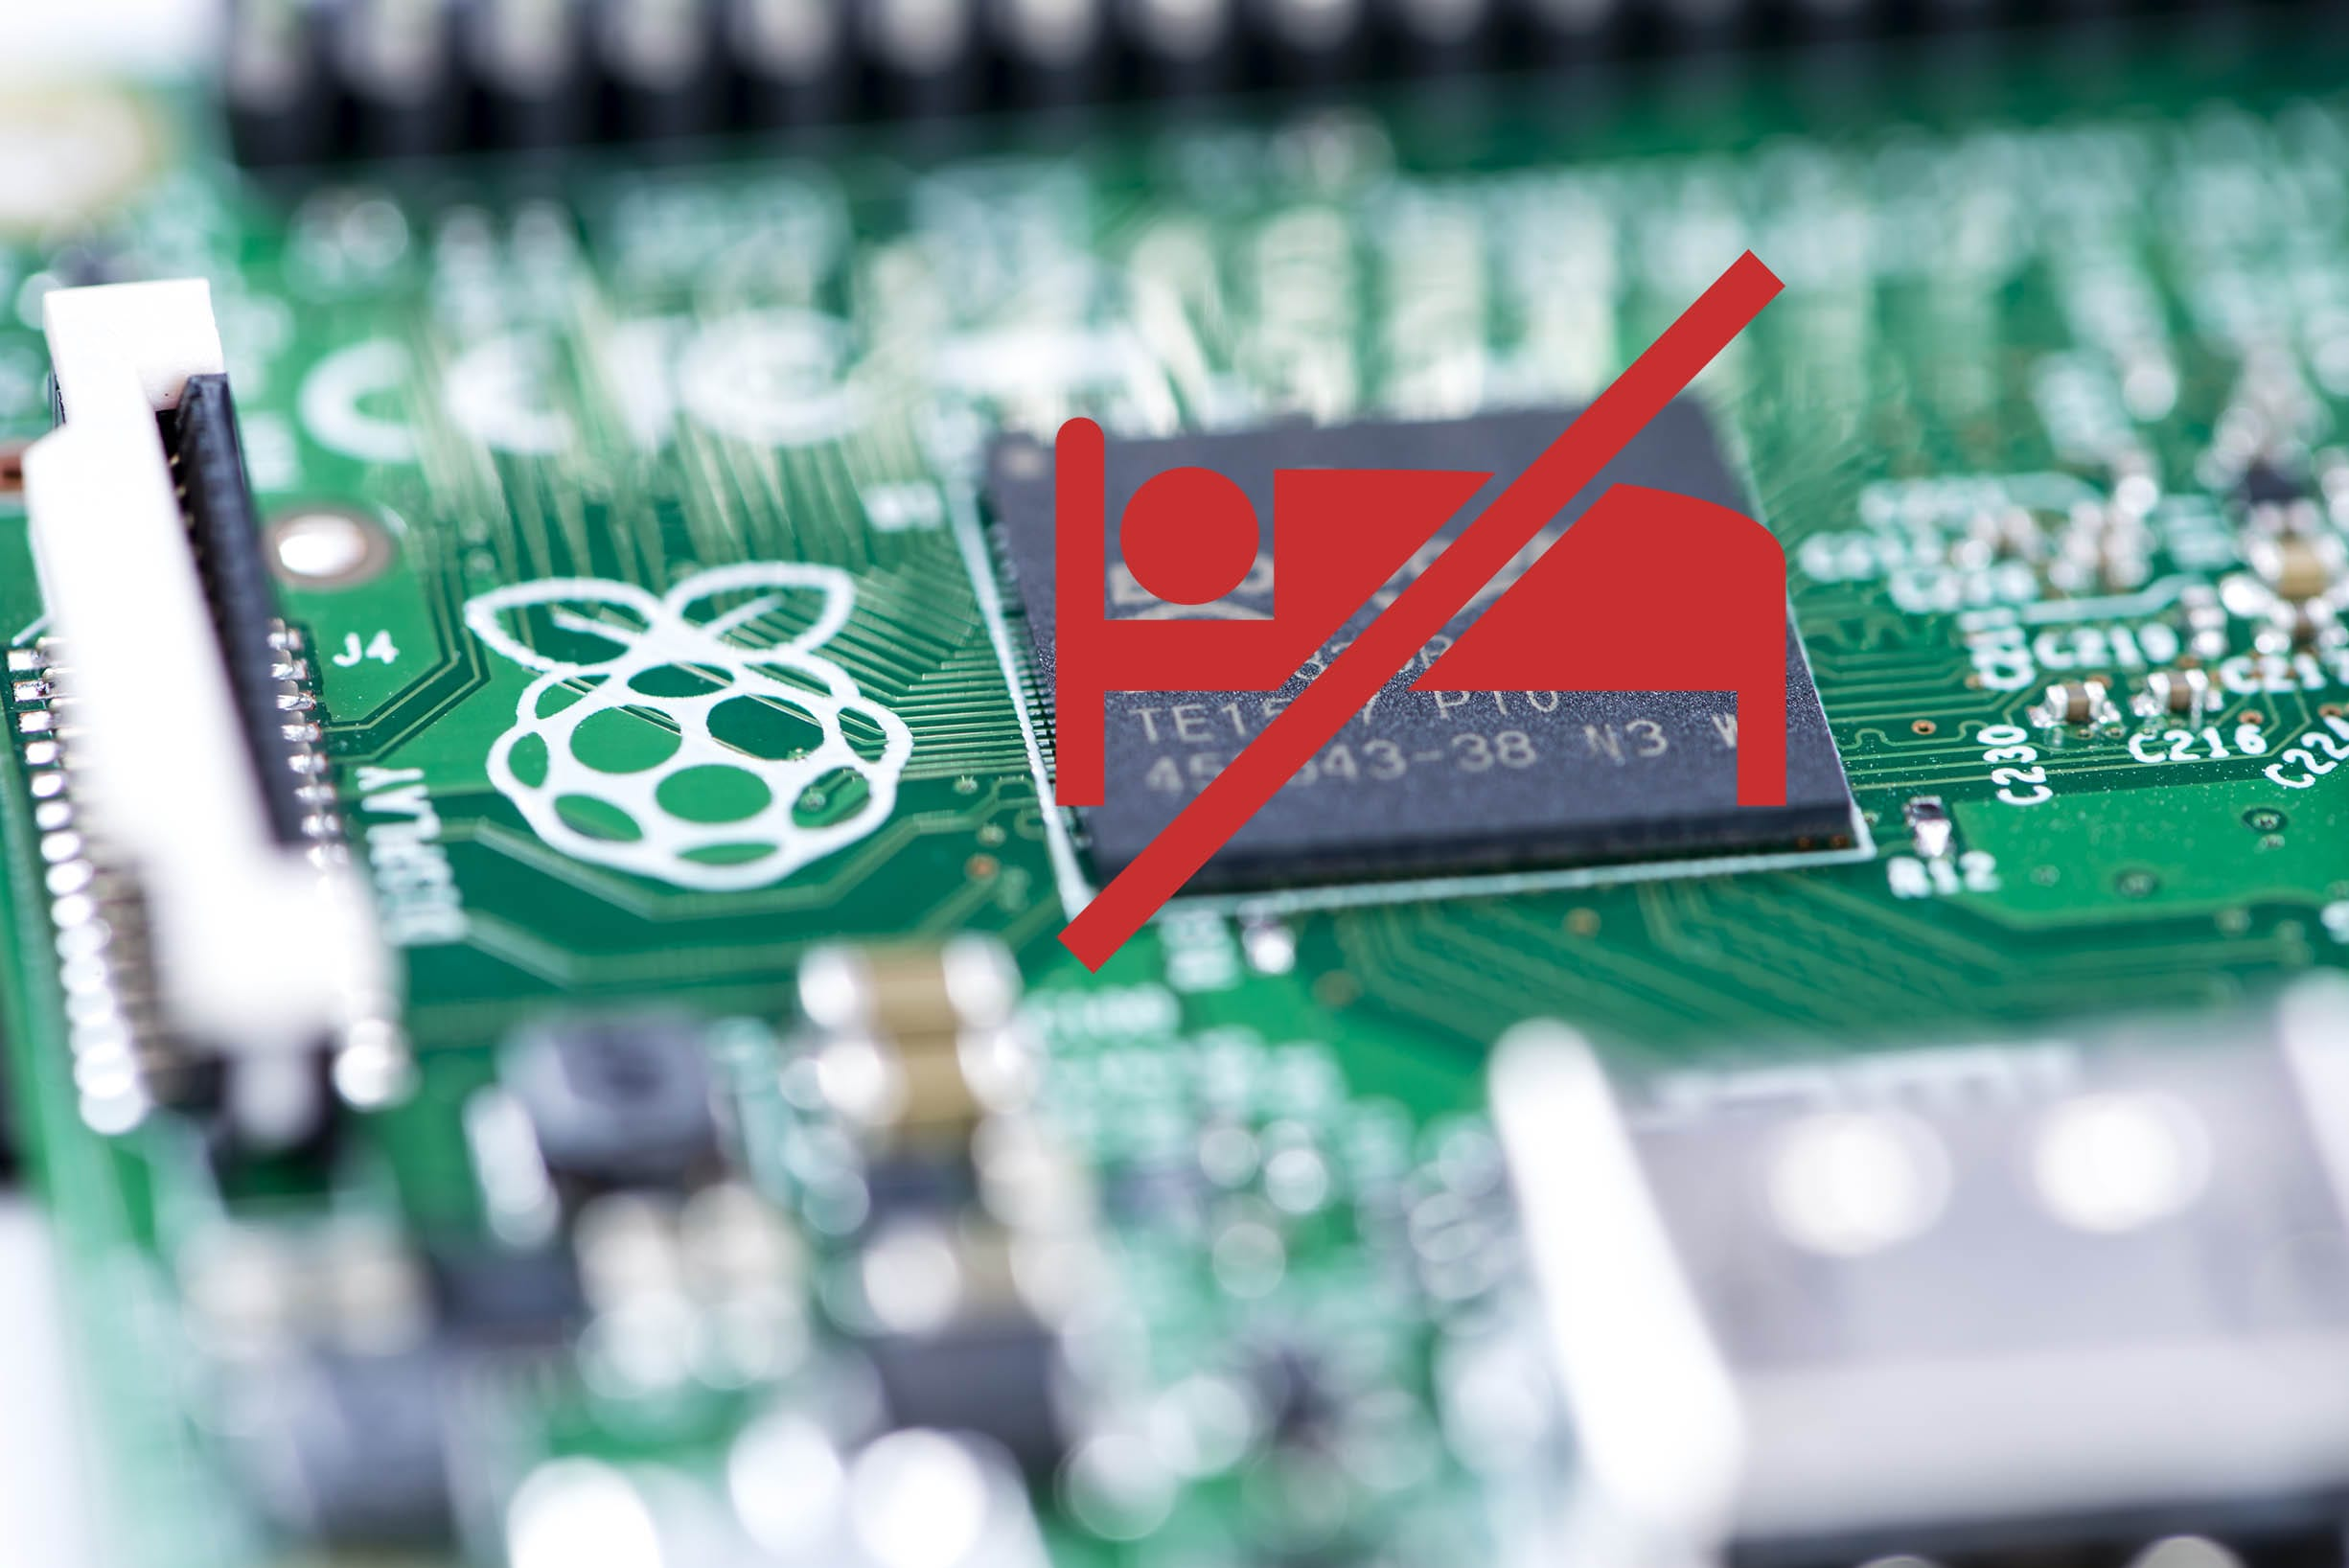 How to Prevent Raspberry Pi Zero from Blanking or Sleeping